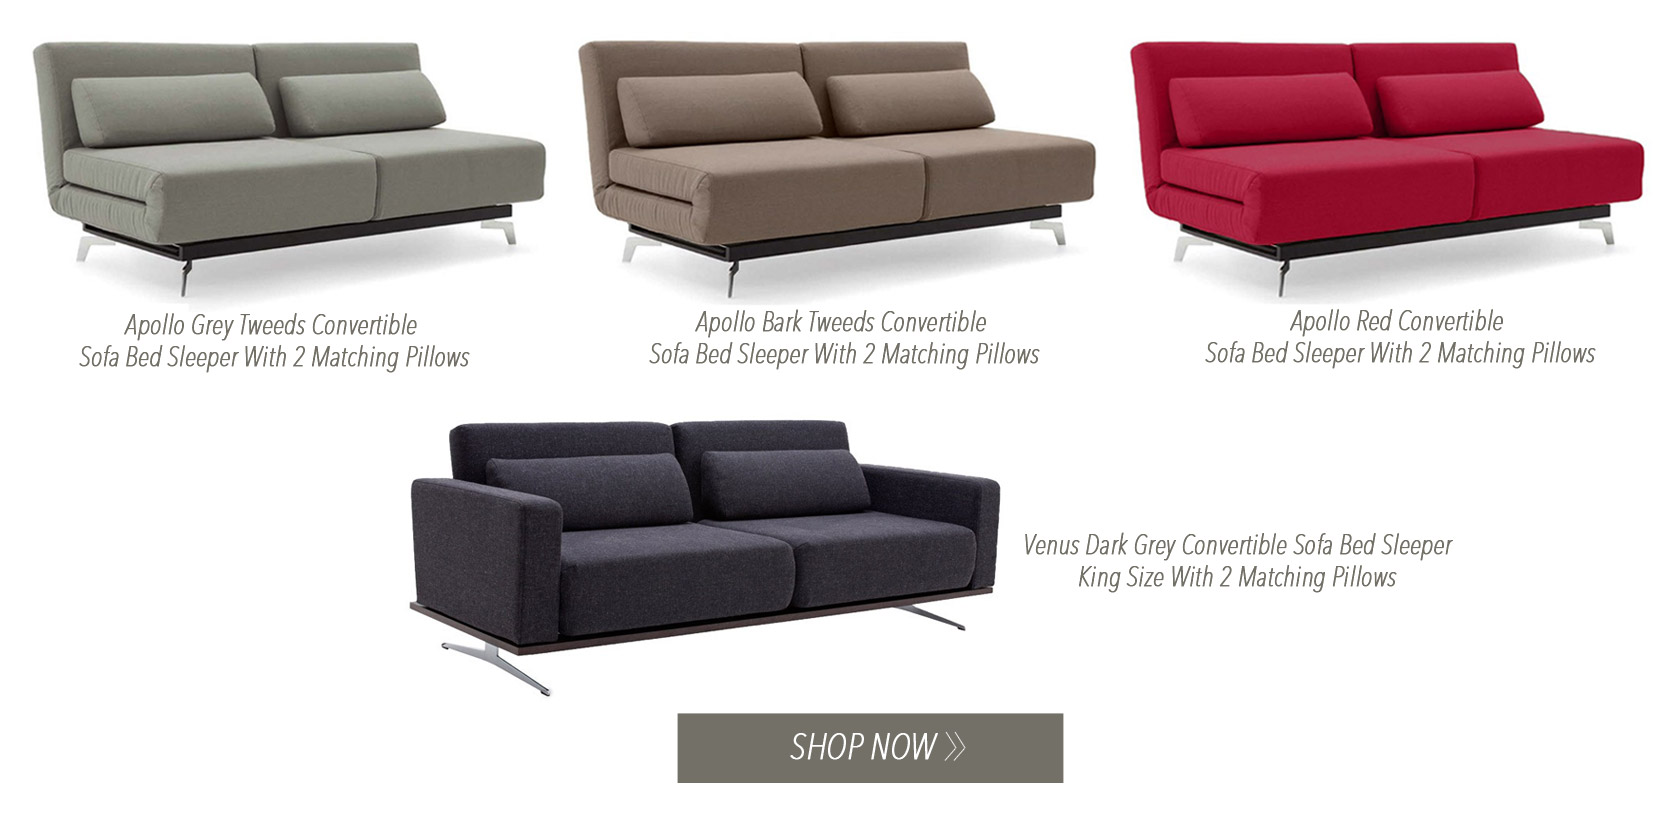 King Size Futons: Modern Sofa Beds